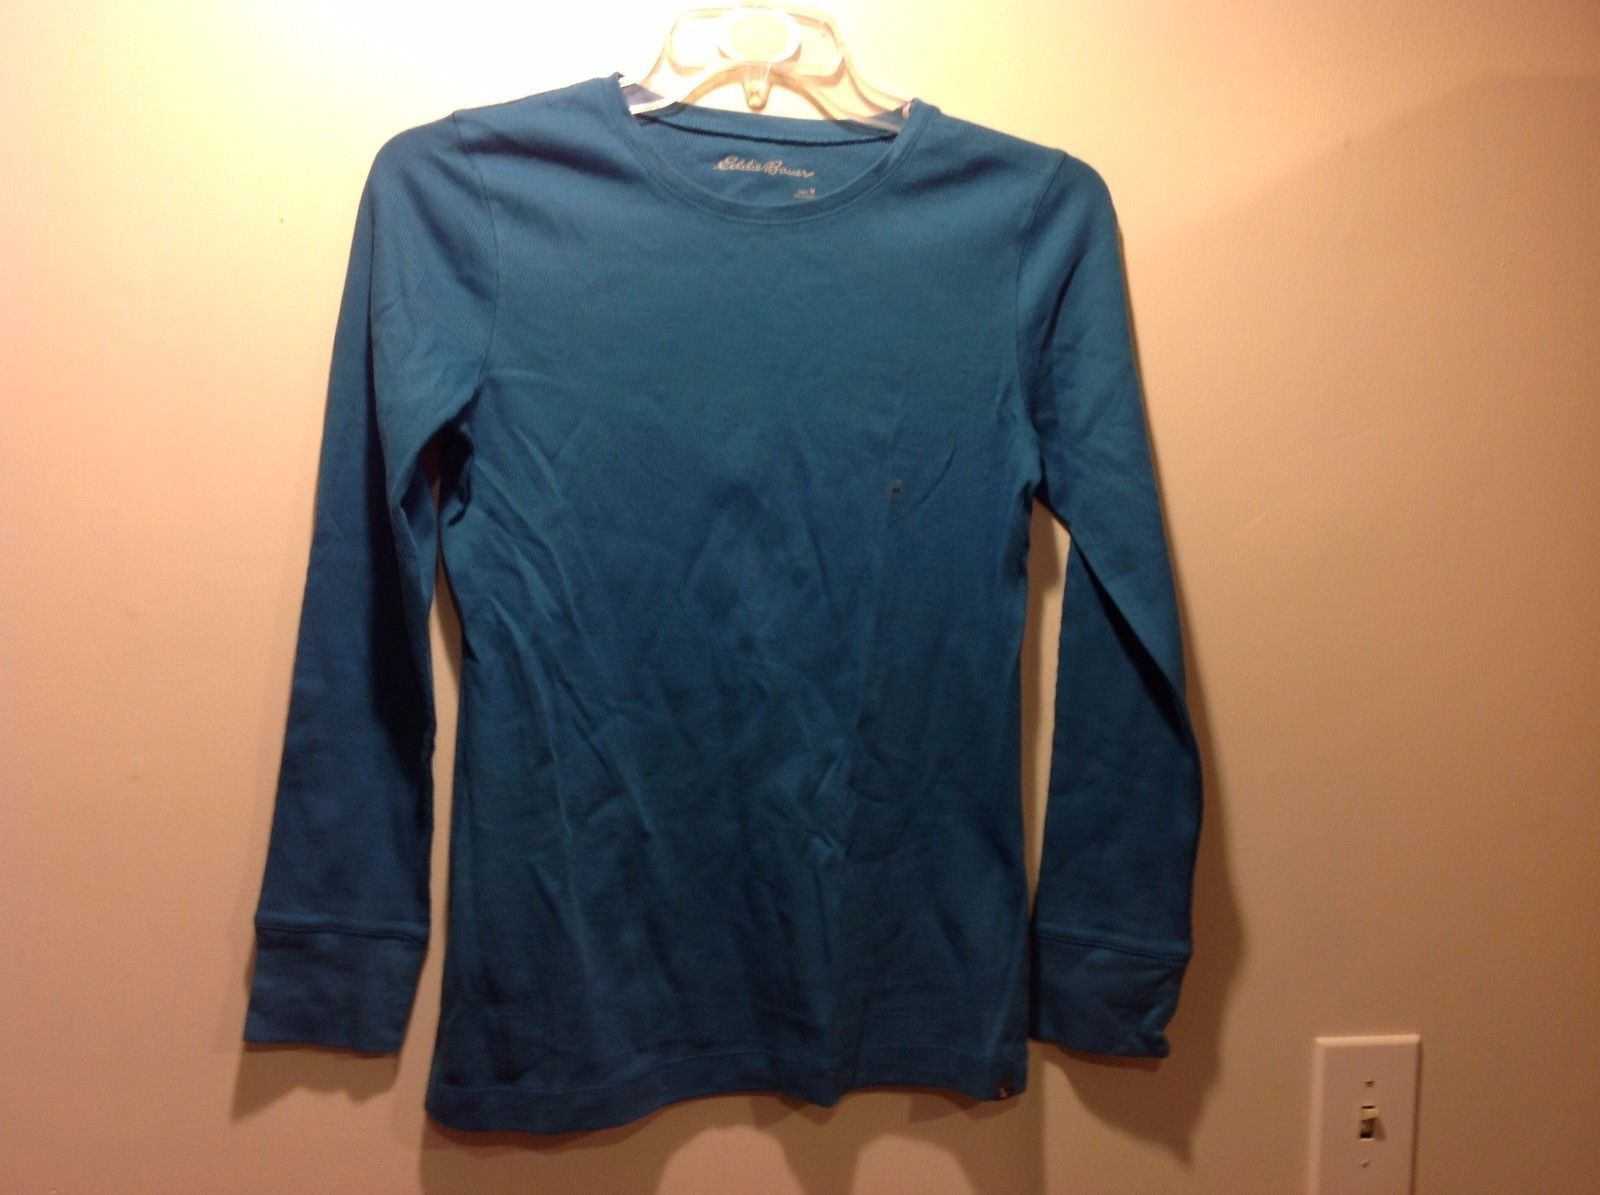 Ladies Eddie Bauer Long Sleeve Teal Textured Shirt Sz M